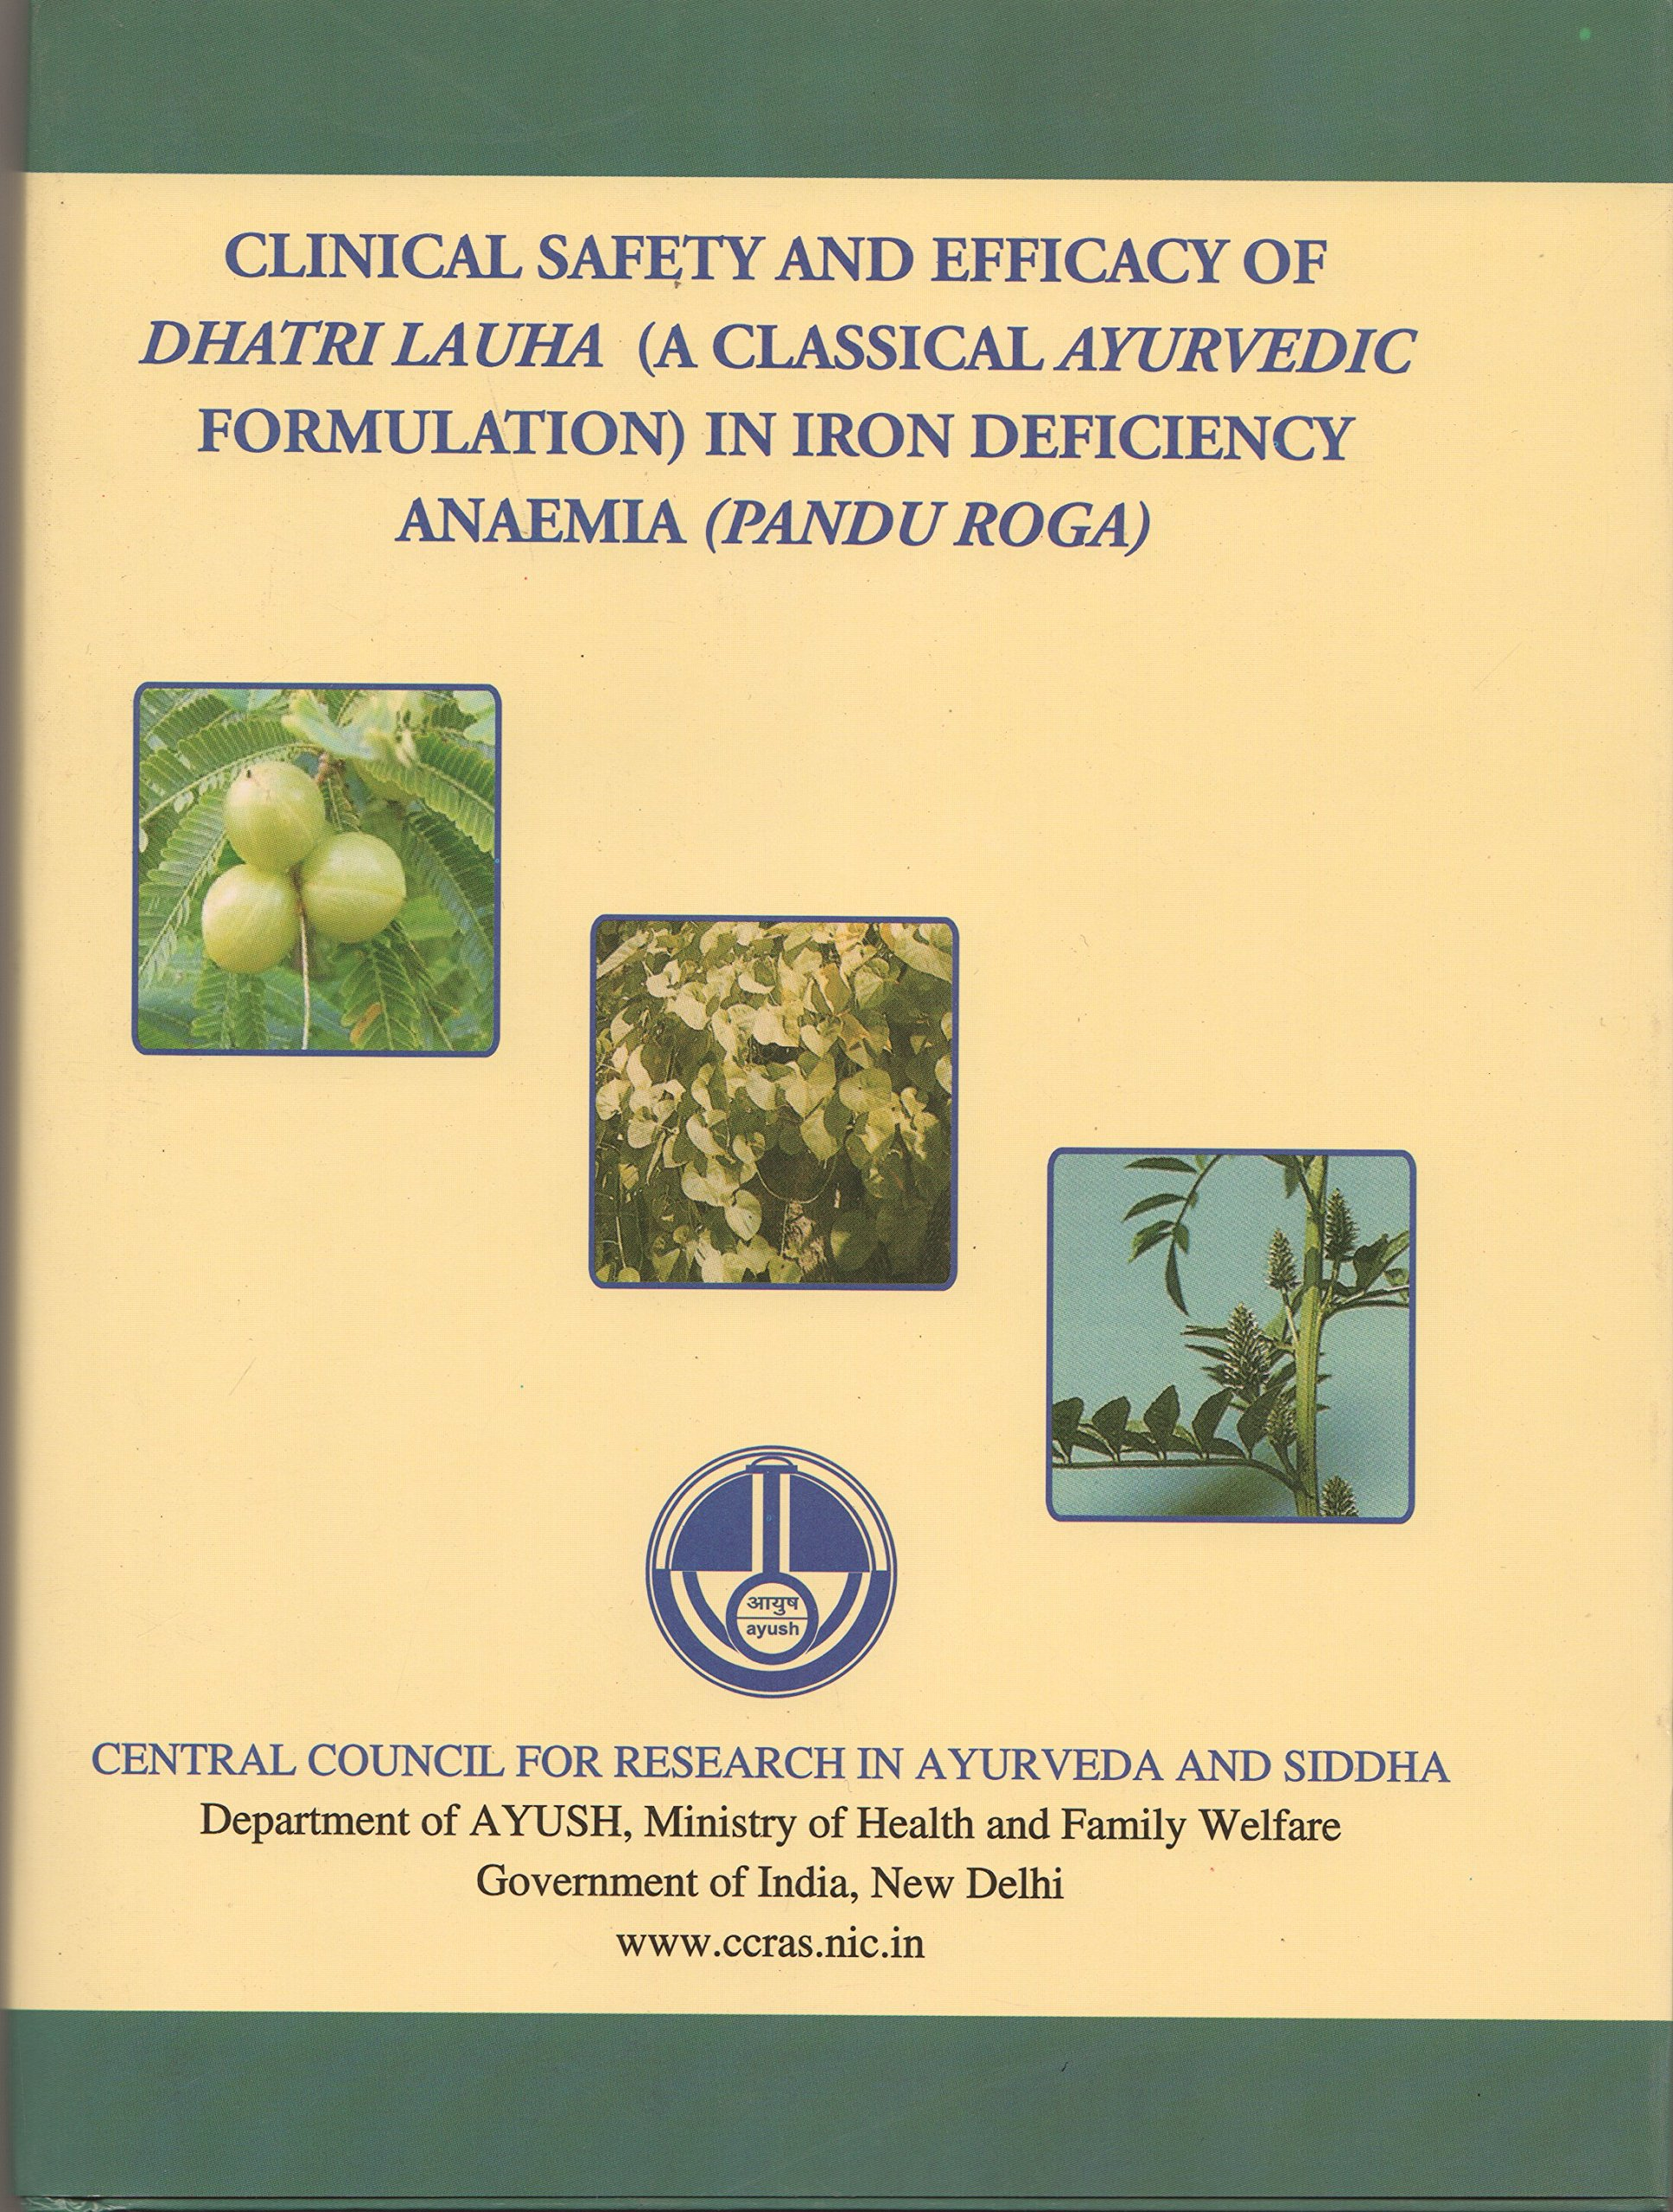 Clinical Safety and Efficacy of Dhatri Lauha [A Classical Ayurvedic Formulation] in Iron Deficiency Anaemia (Pandu Roga)